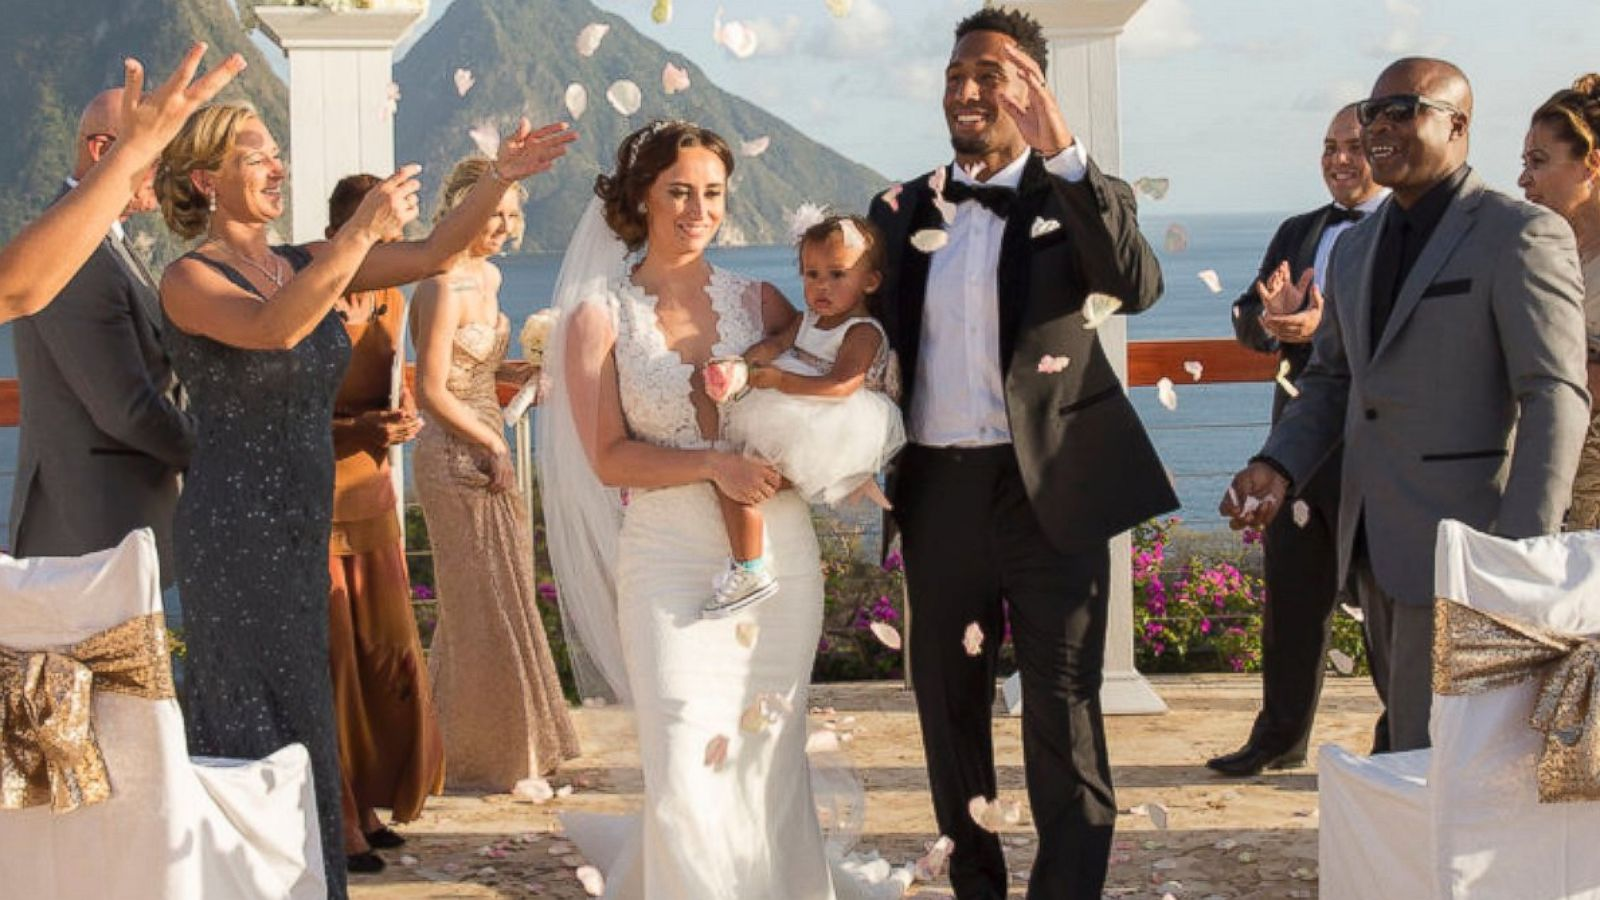 Nfl Player And Wife Ask Wedding Guests To Donate Animal Rescue In Lieu Of Gifts Abc News